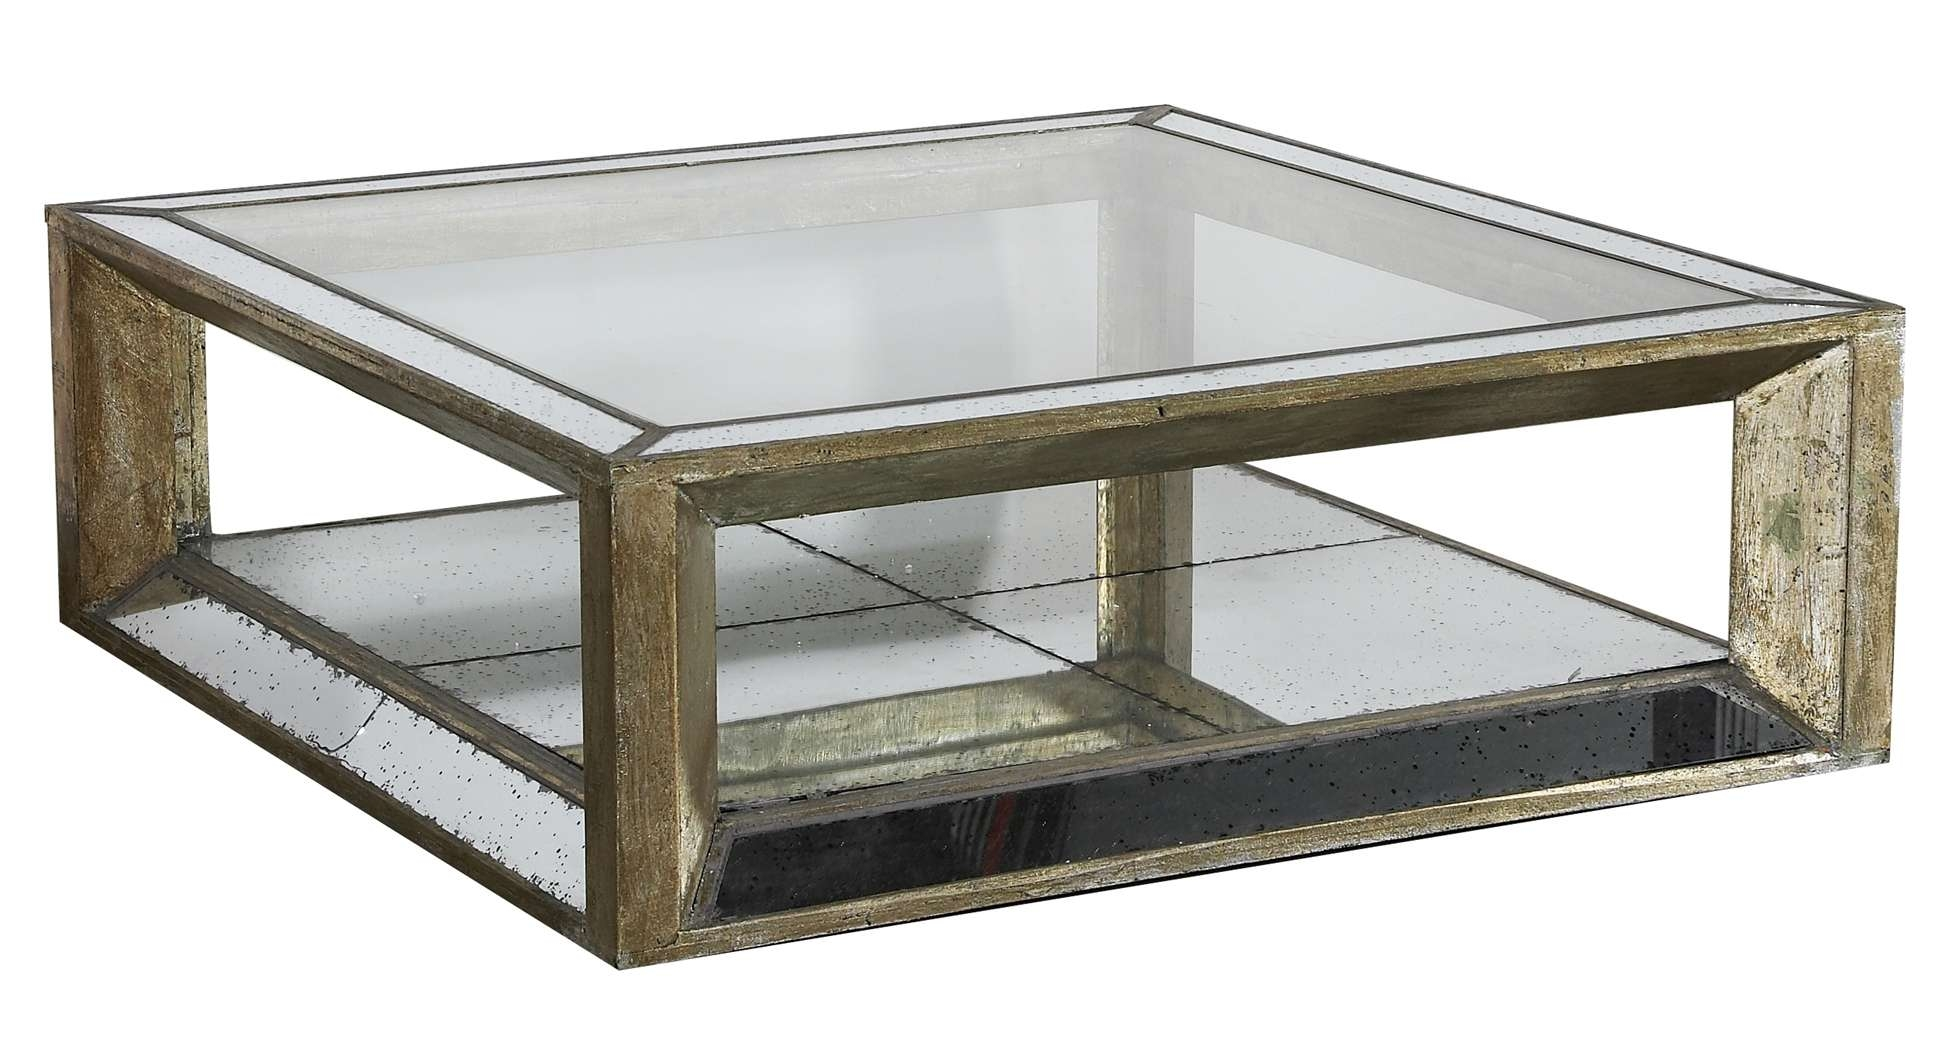 Old Style Square Mirrored Coffee Table With Reclaimed Wooden Frame Intended For Latest Round Mirrored Coffee Tables (Gallery 8 of 20)